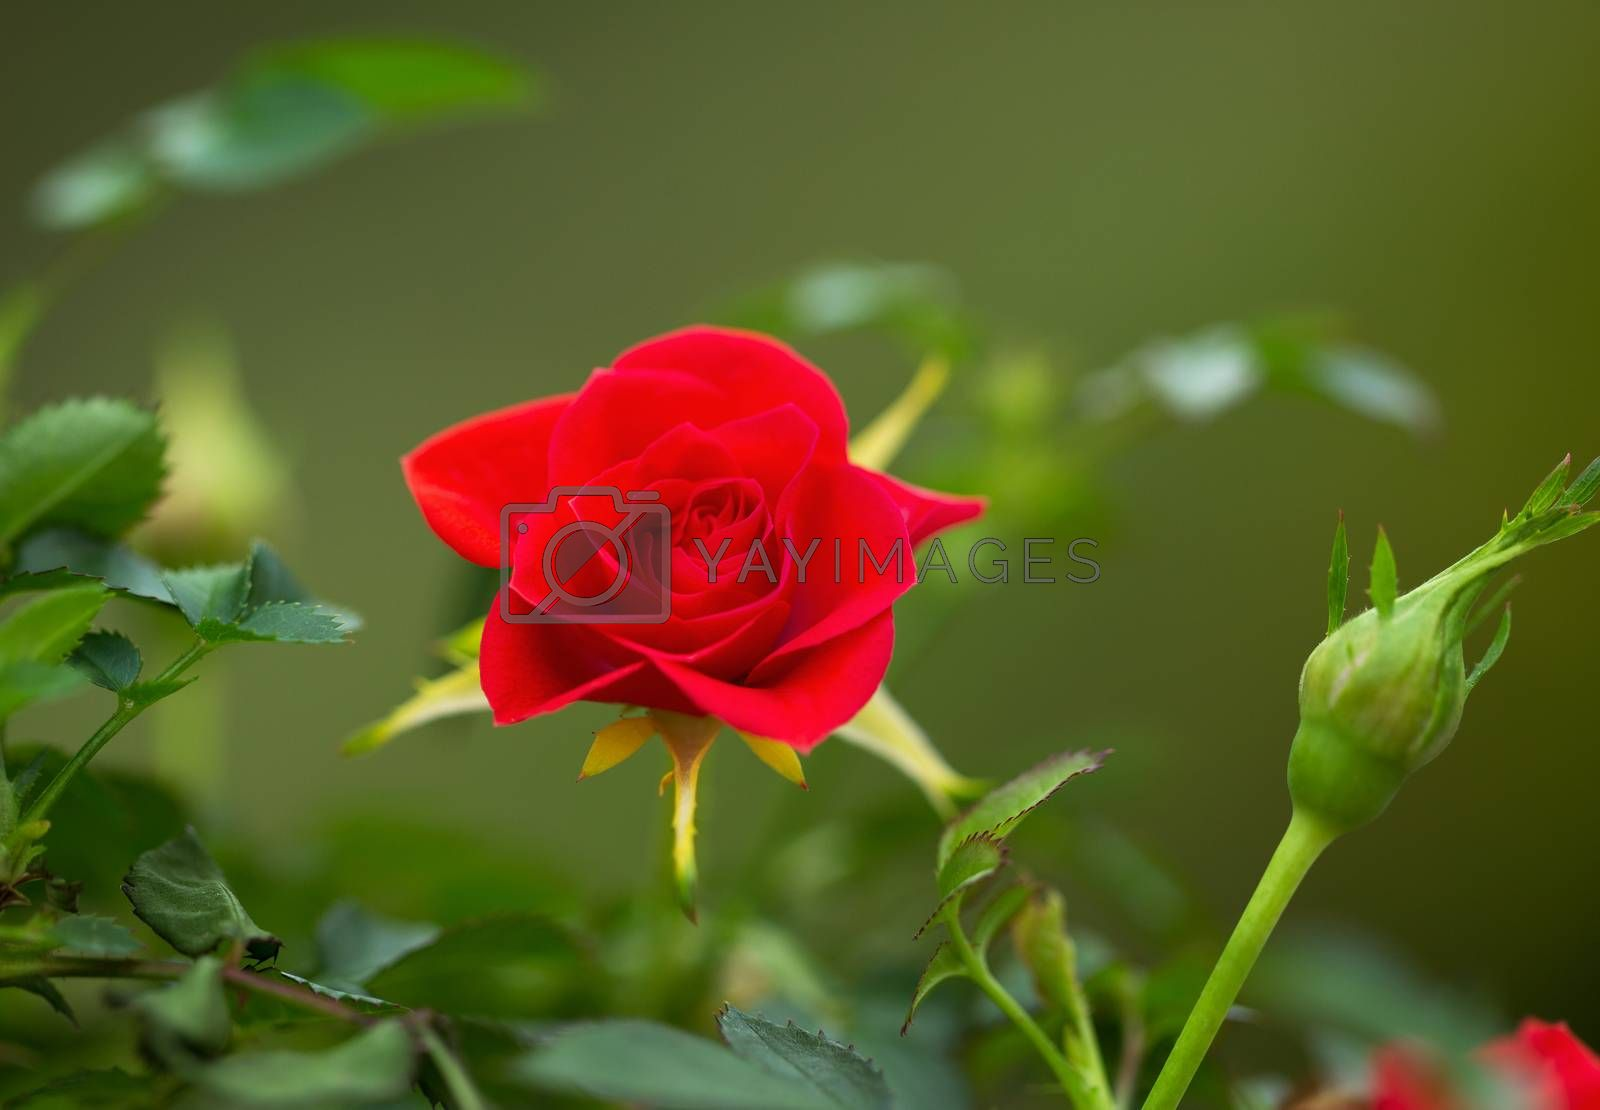 Horizontal closeup photo of single wild red rose in full bloom outdoors during spring season with green background